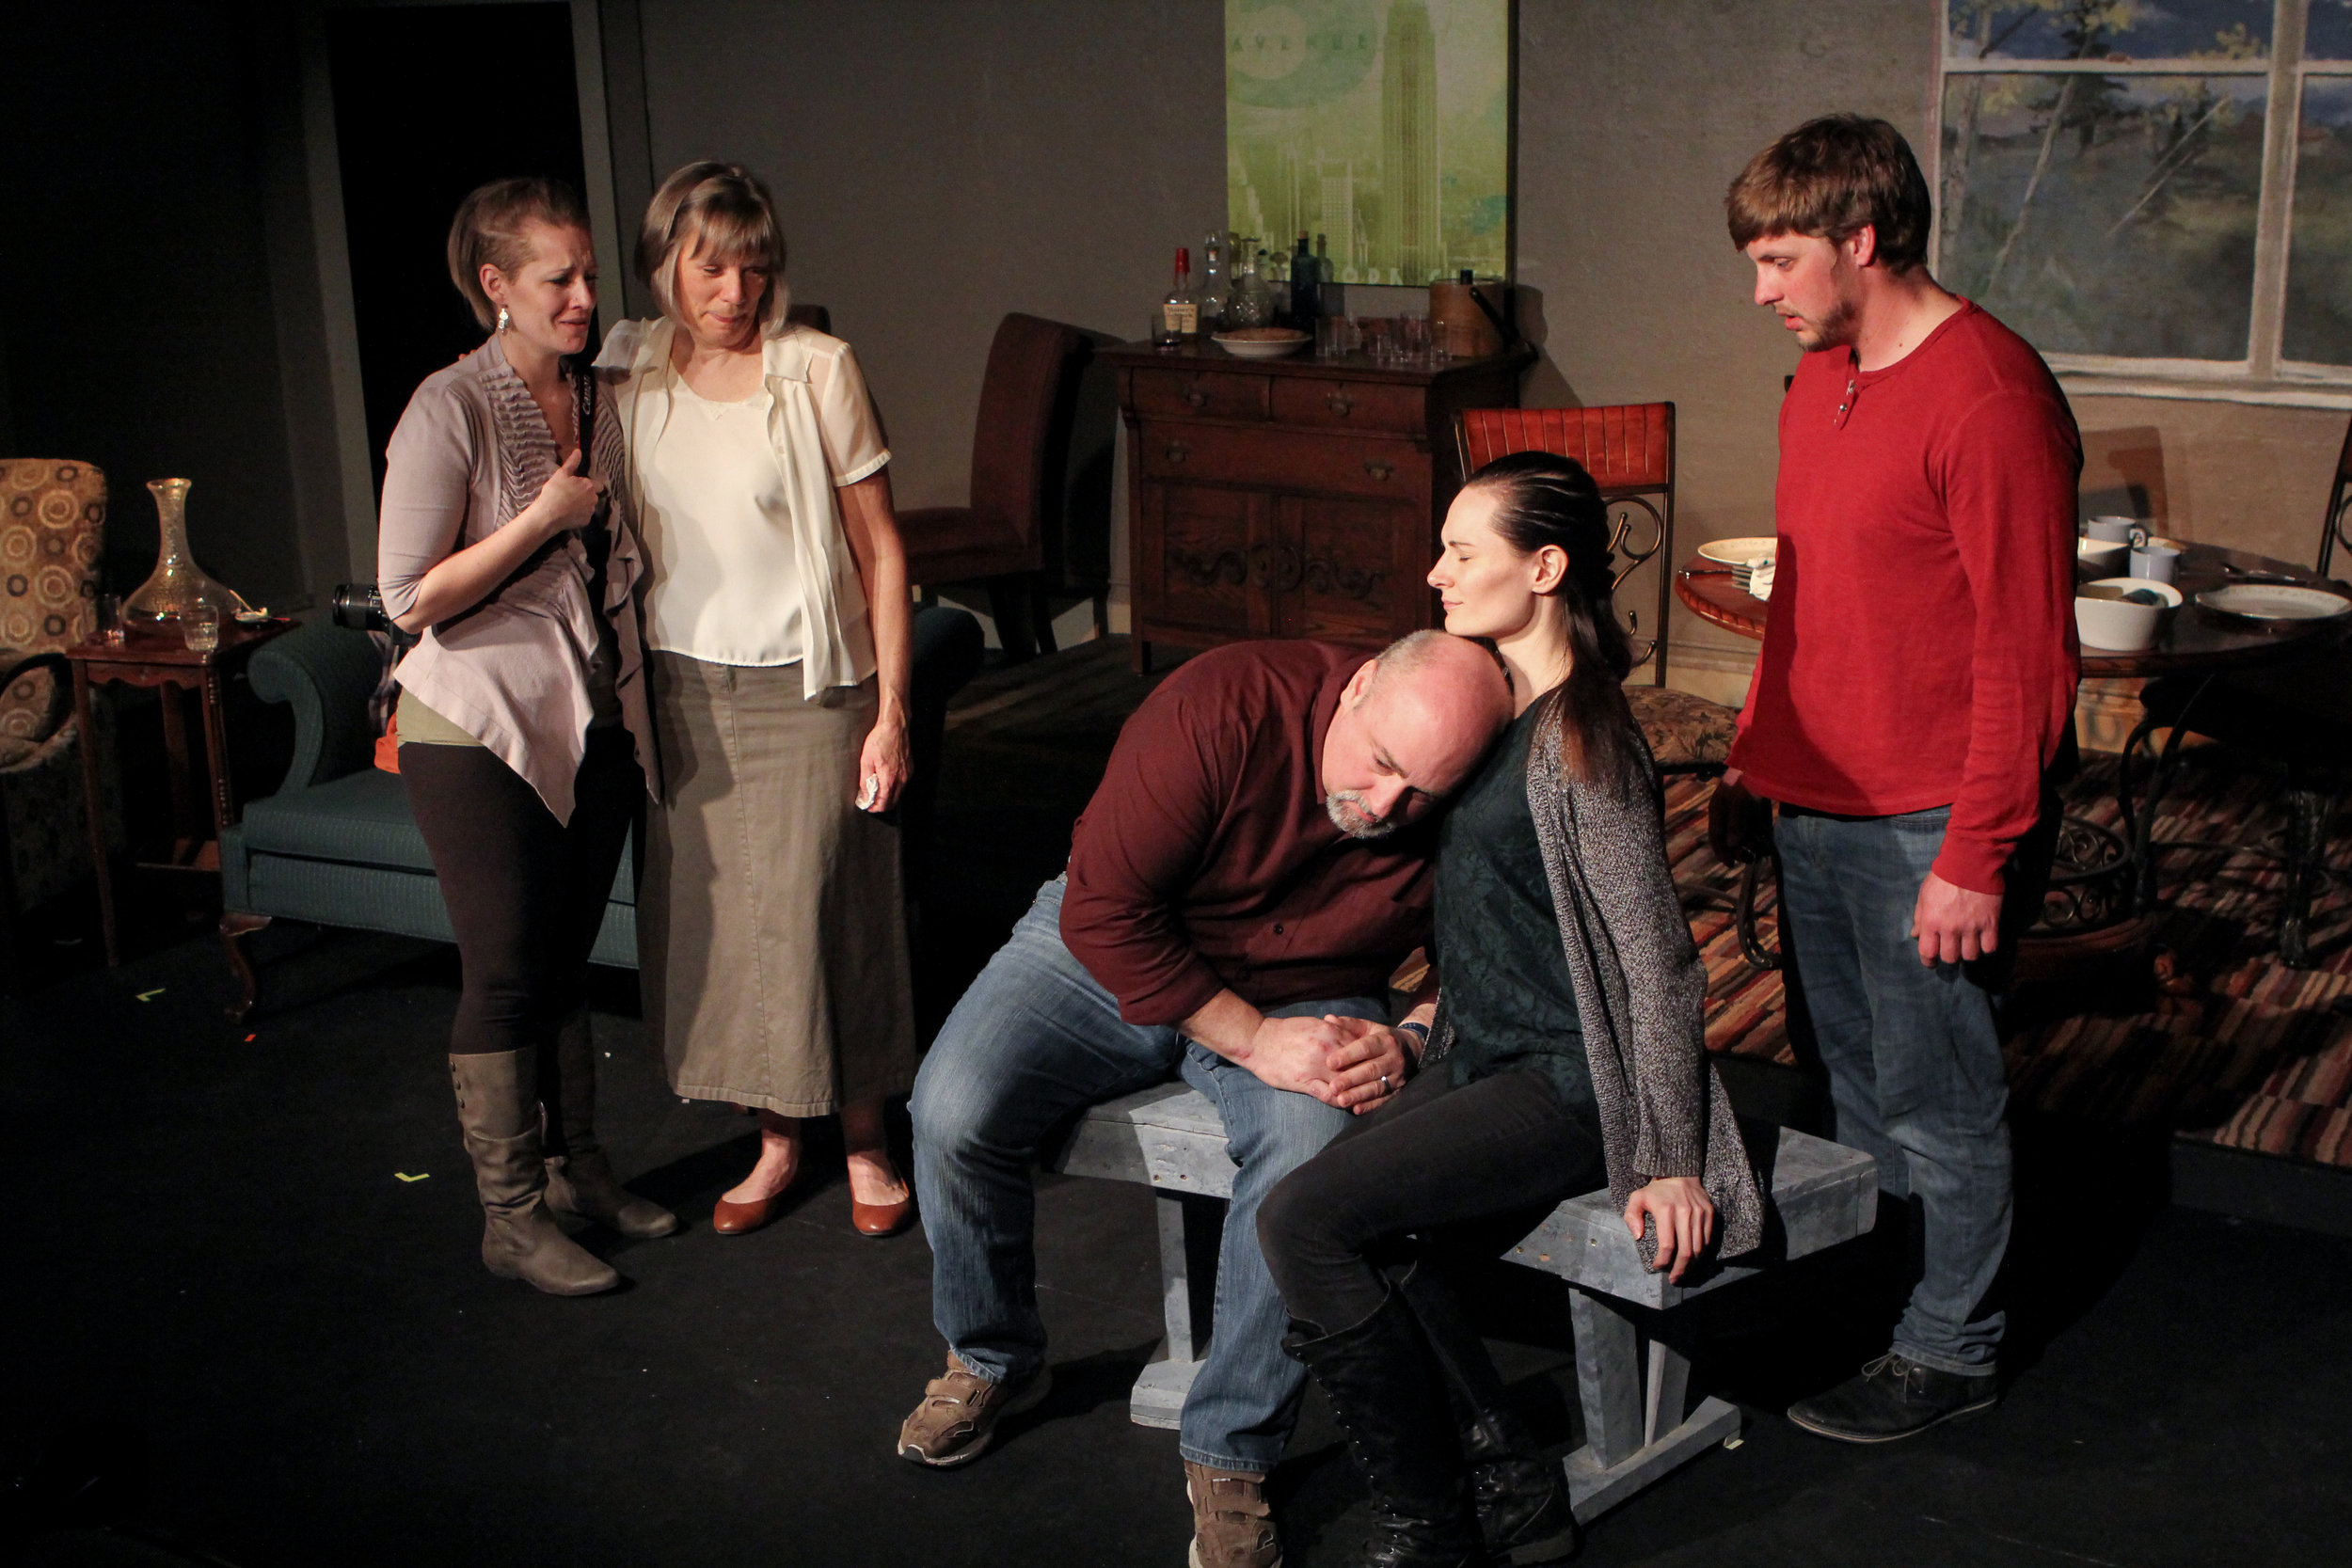 In a touching scene, Jack's father (Bob Fuchs) listens to his son's heart beating in Joy (Alyssa Falvey) supported by his daughter Sammy (Cayla Anderson) and wife (Sara Sarna). His son Jack (Zachary Klahn) watches over his family.